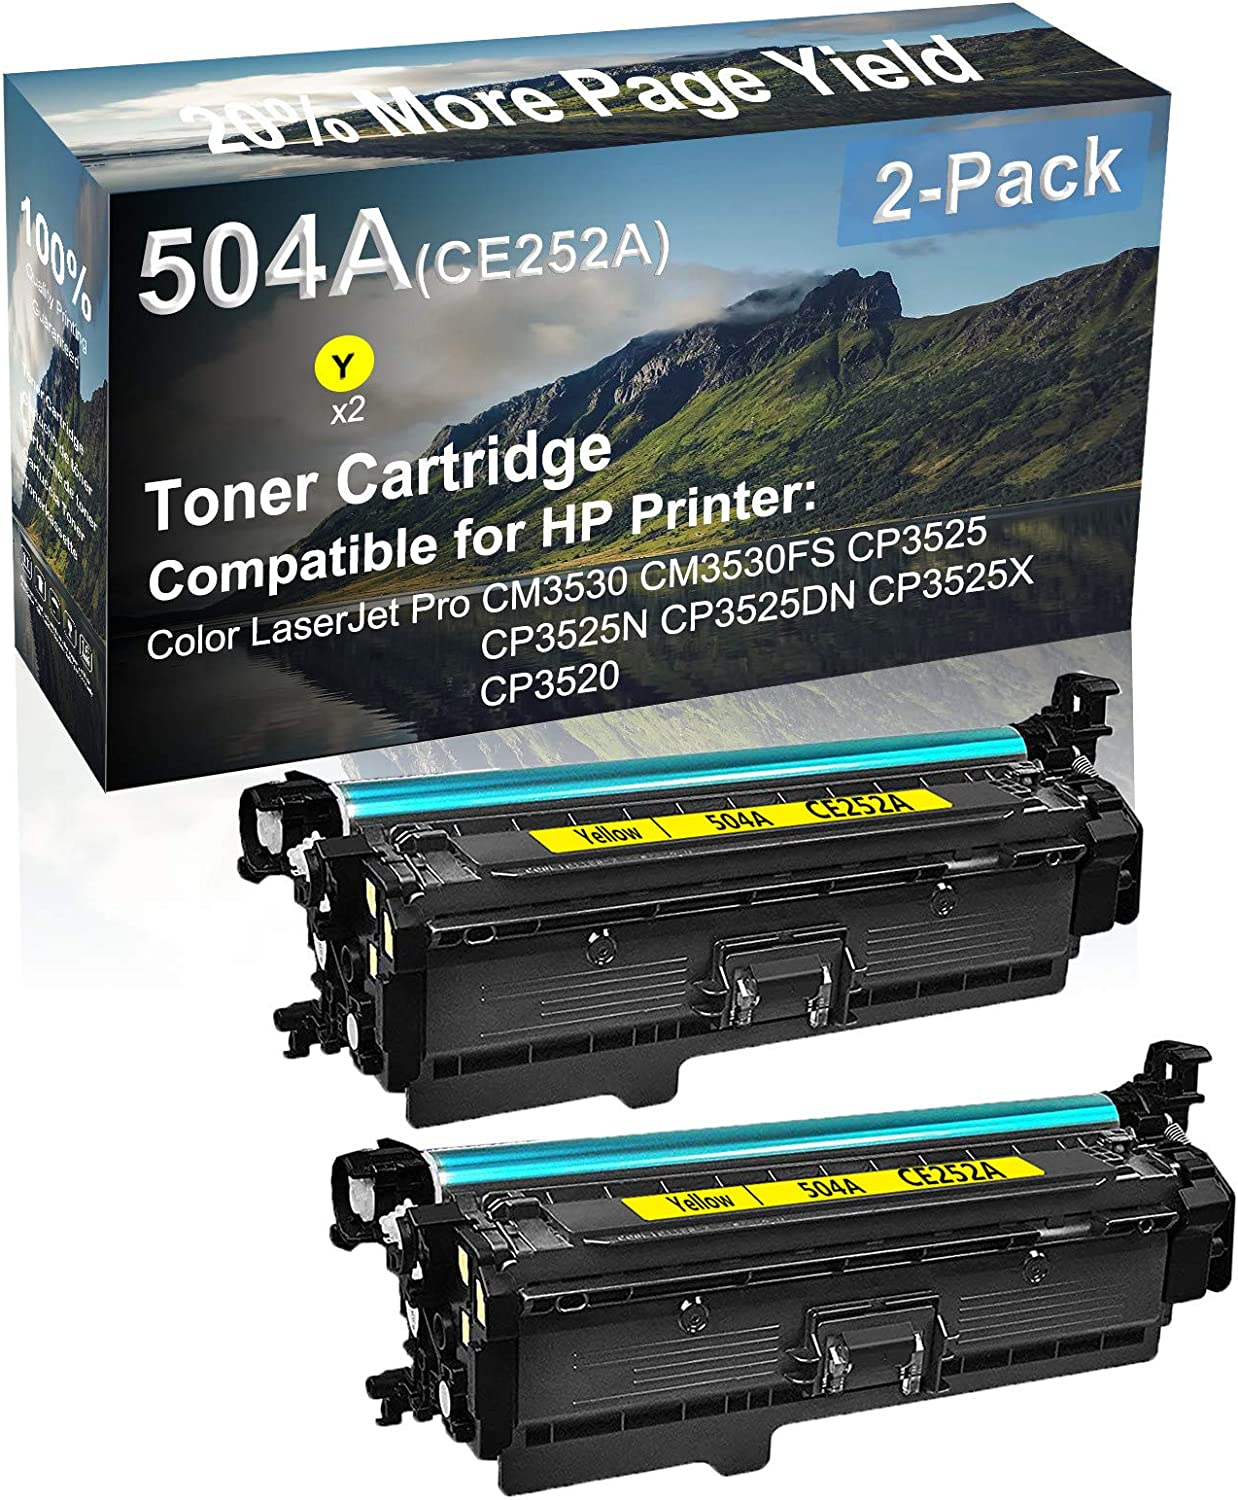 2-Pack (Yellow) Compatible CP3525N CP3525DN Printer Toner Cartridge High Capacity Replacement for HP (CE252A) 504A Toner Cartridge